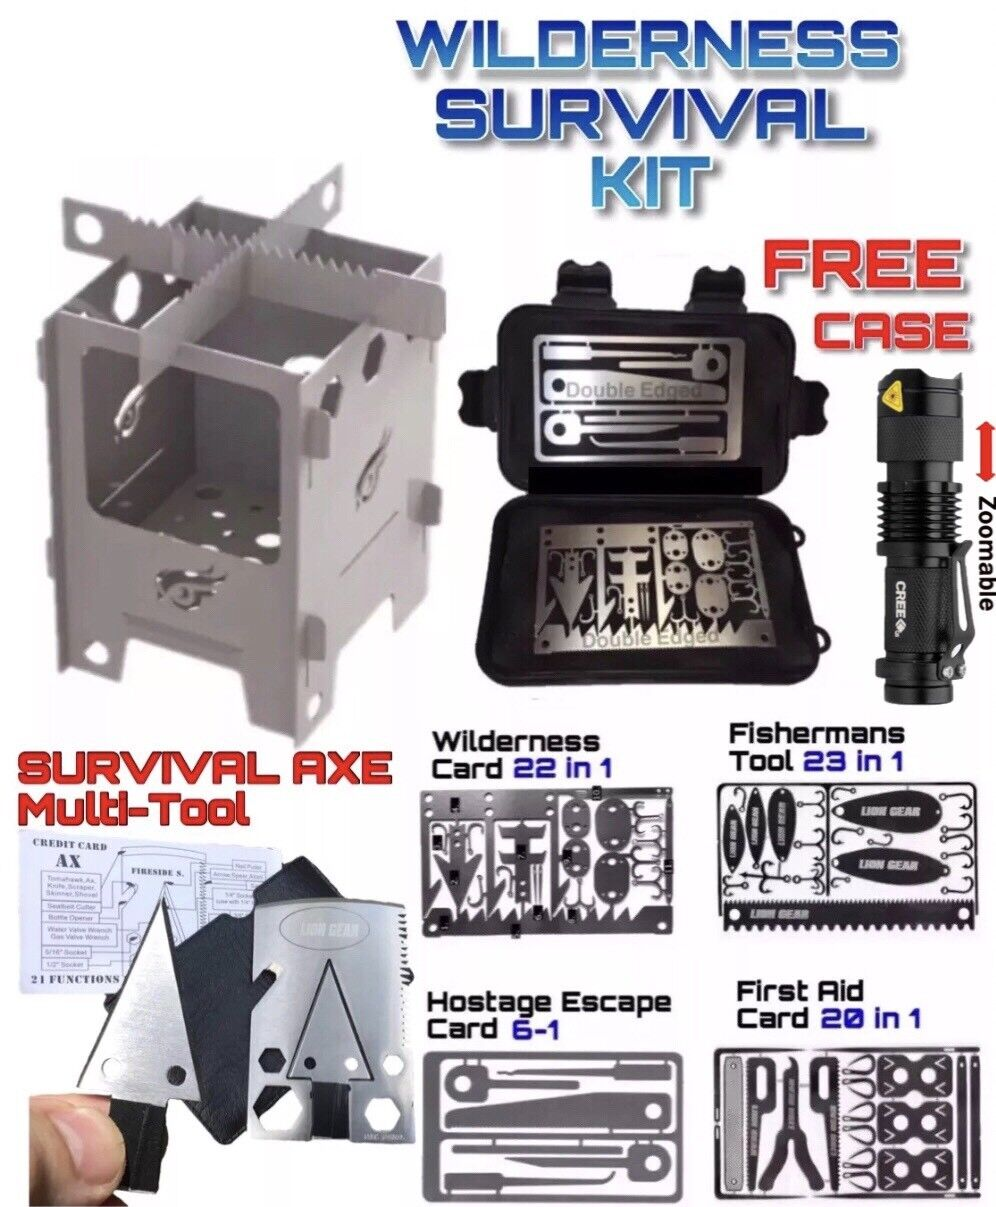 Survival Card Set Axe Hunting Fishing First Aid Escape Mini Stove Q5 Flashlight